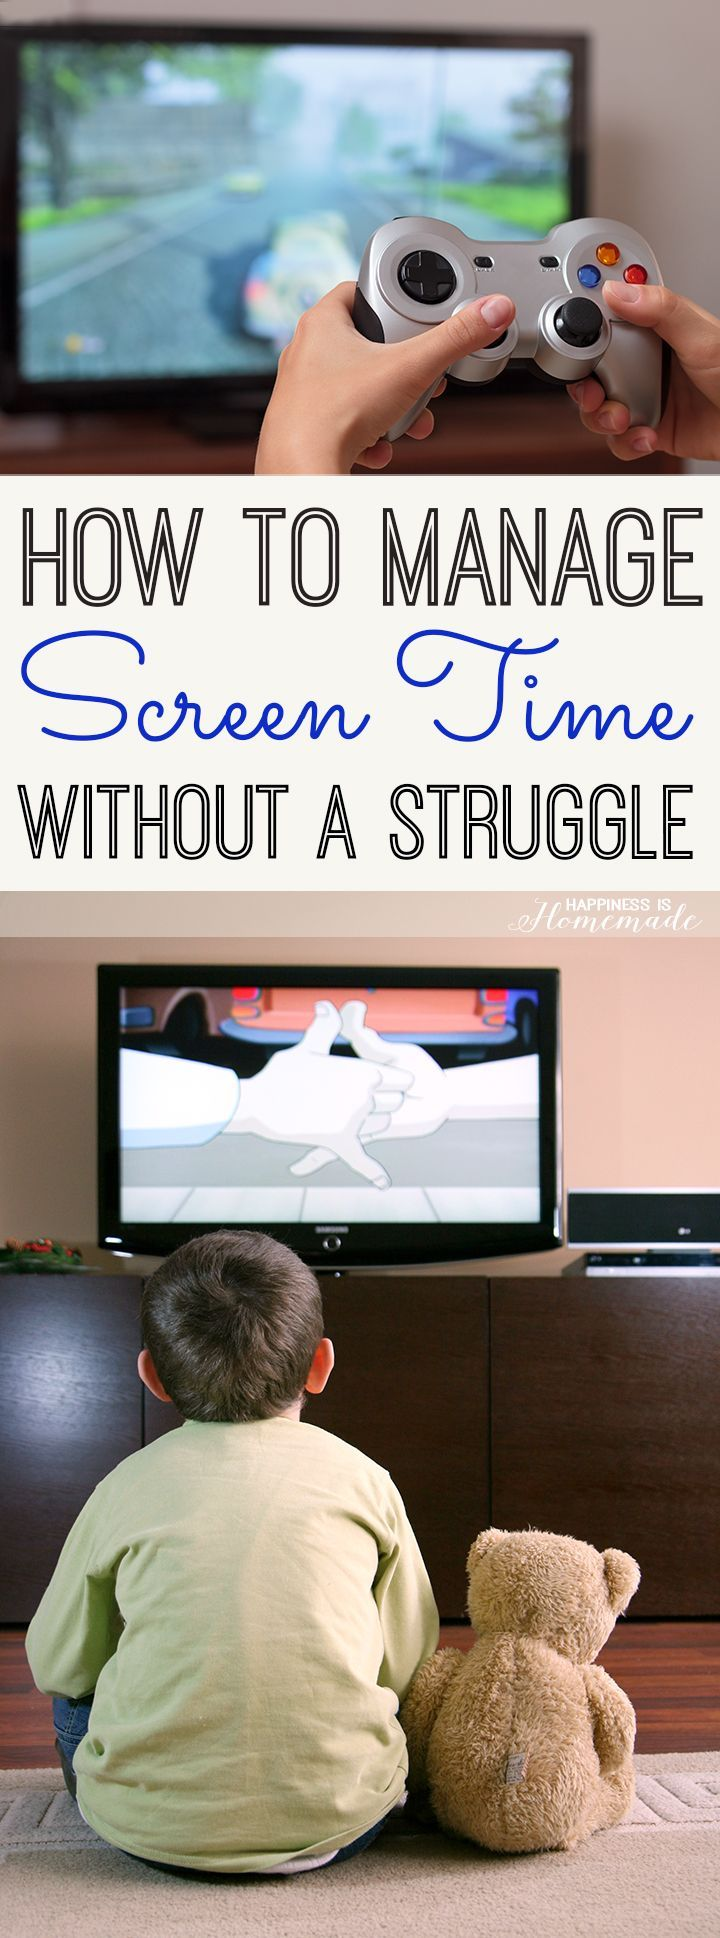 How to Manage Your Child's Screen Time Without a Struggle